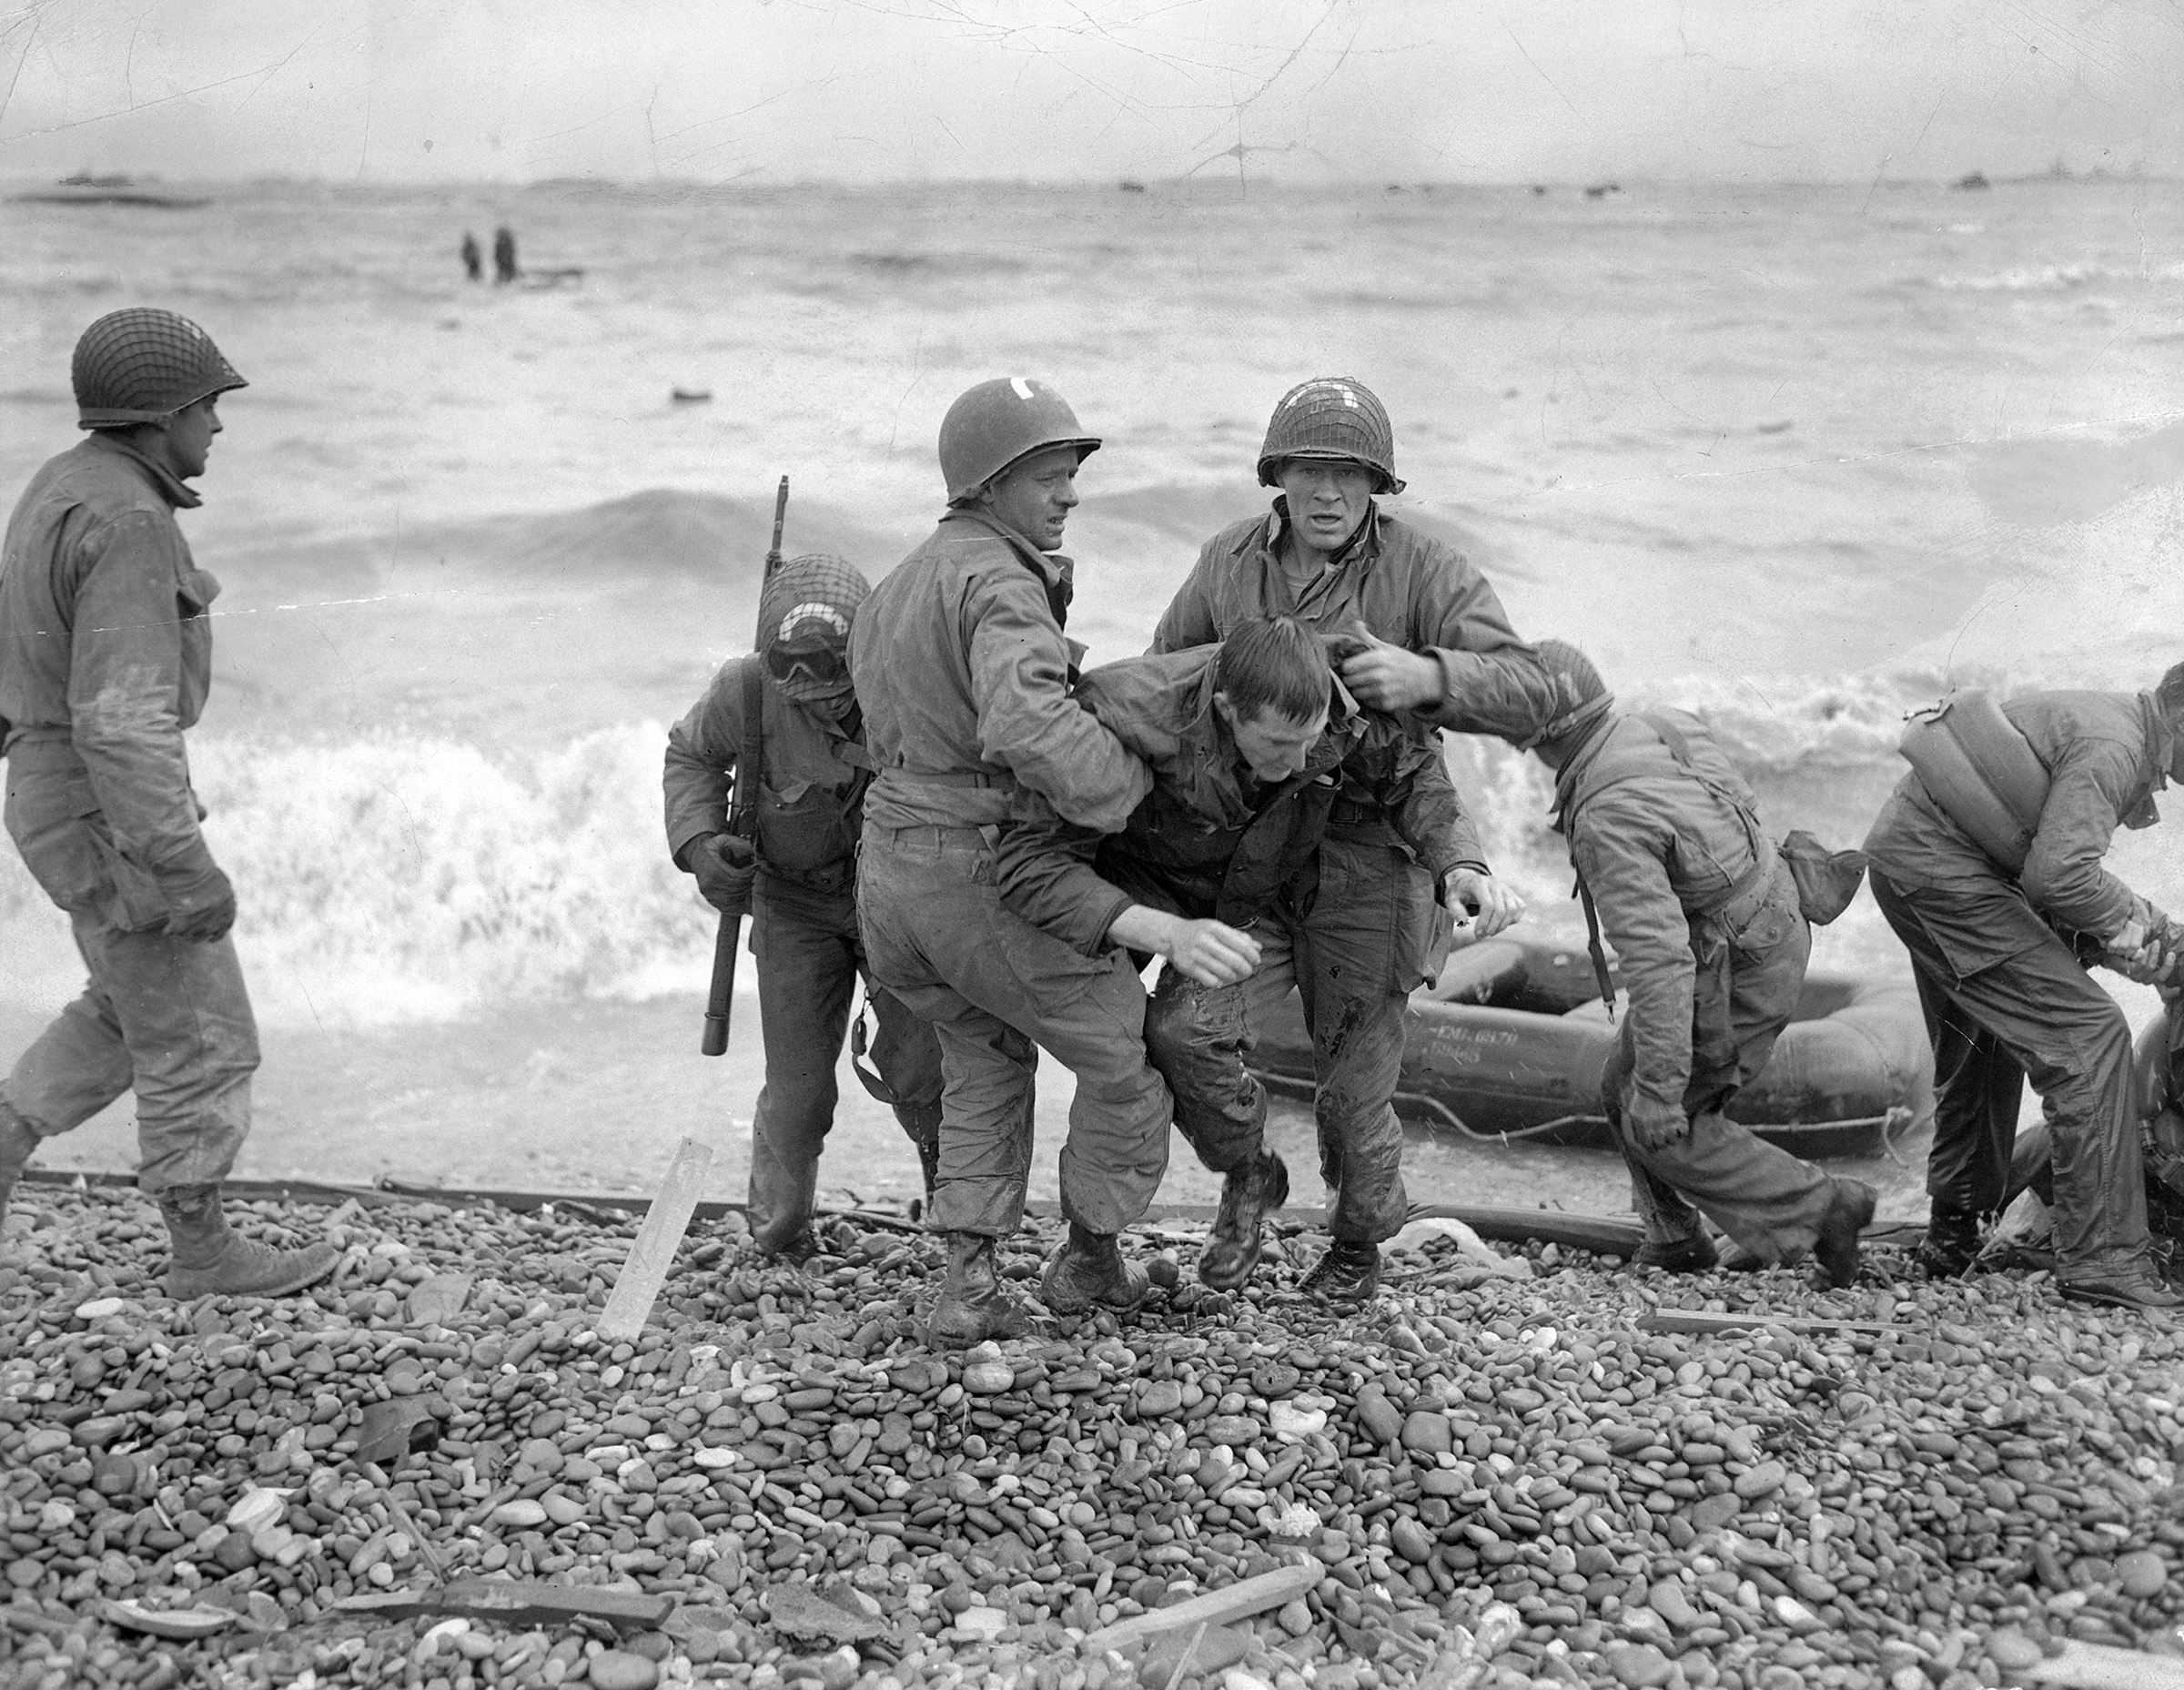 Members of an American landing party help soldiers ashore near Cherbourg, France, after their landing craft was sunk by enemy action on June 6, 1944.